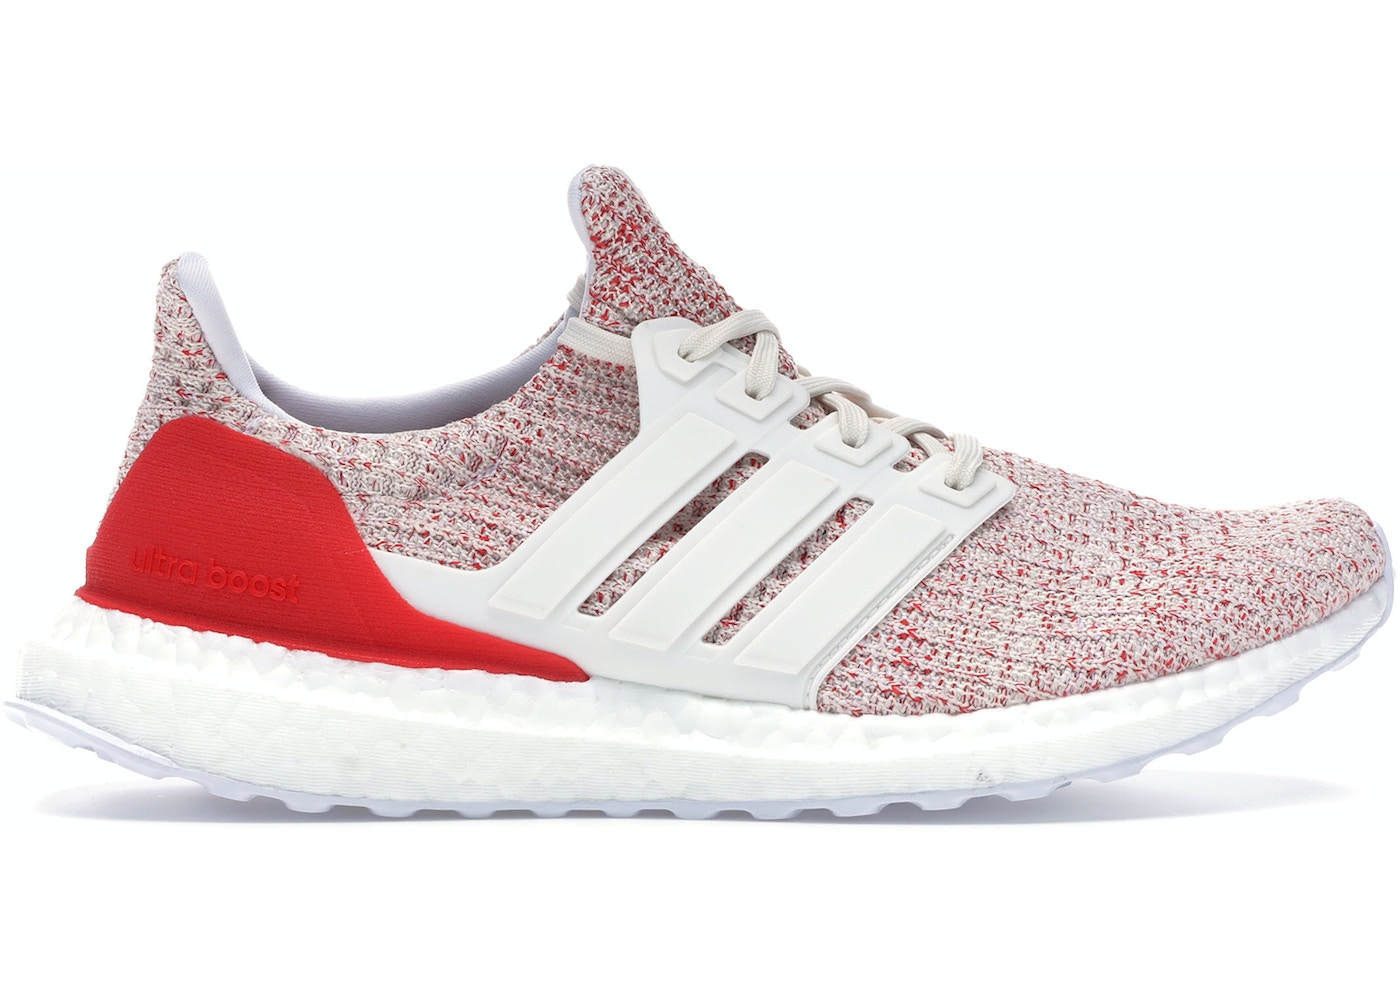 quality buy online buy sale adidas Ultra Boost 4.0 Chalk White Active Red (W)